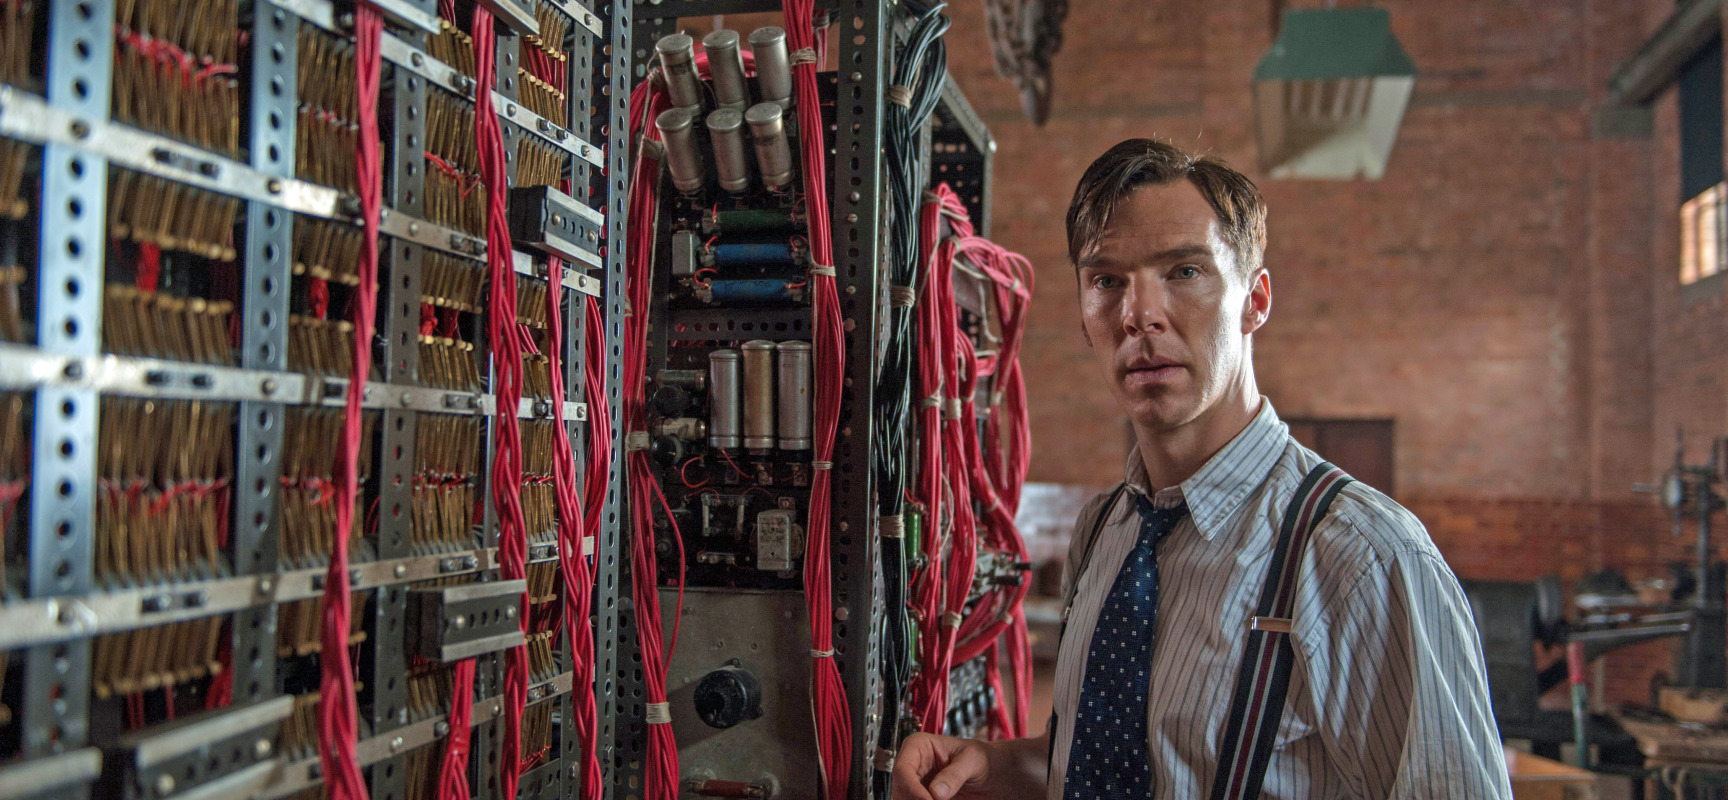 GIOVEDI' 13 AGOSTO AD ARTEMISIA SI PROIETTA 'THE IMITATION GAME'